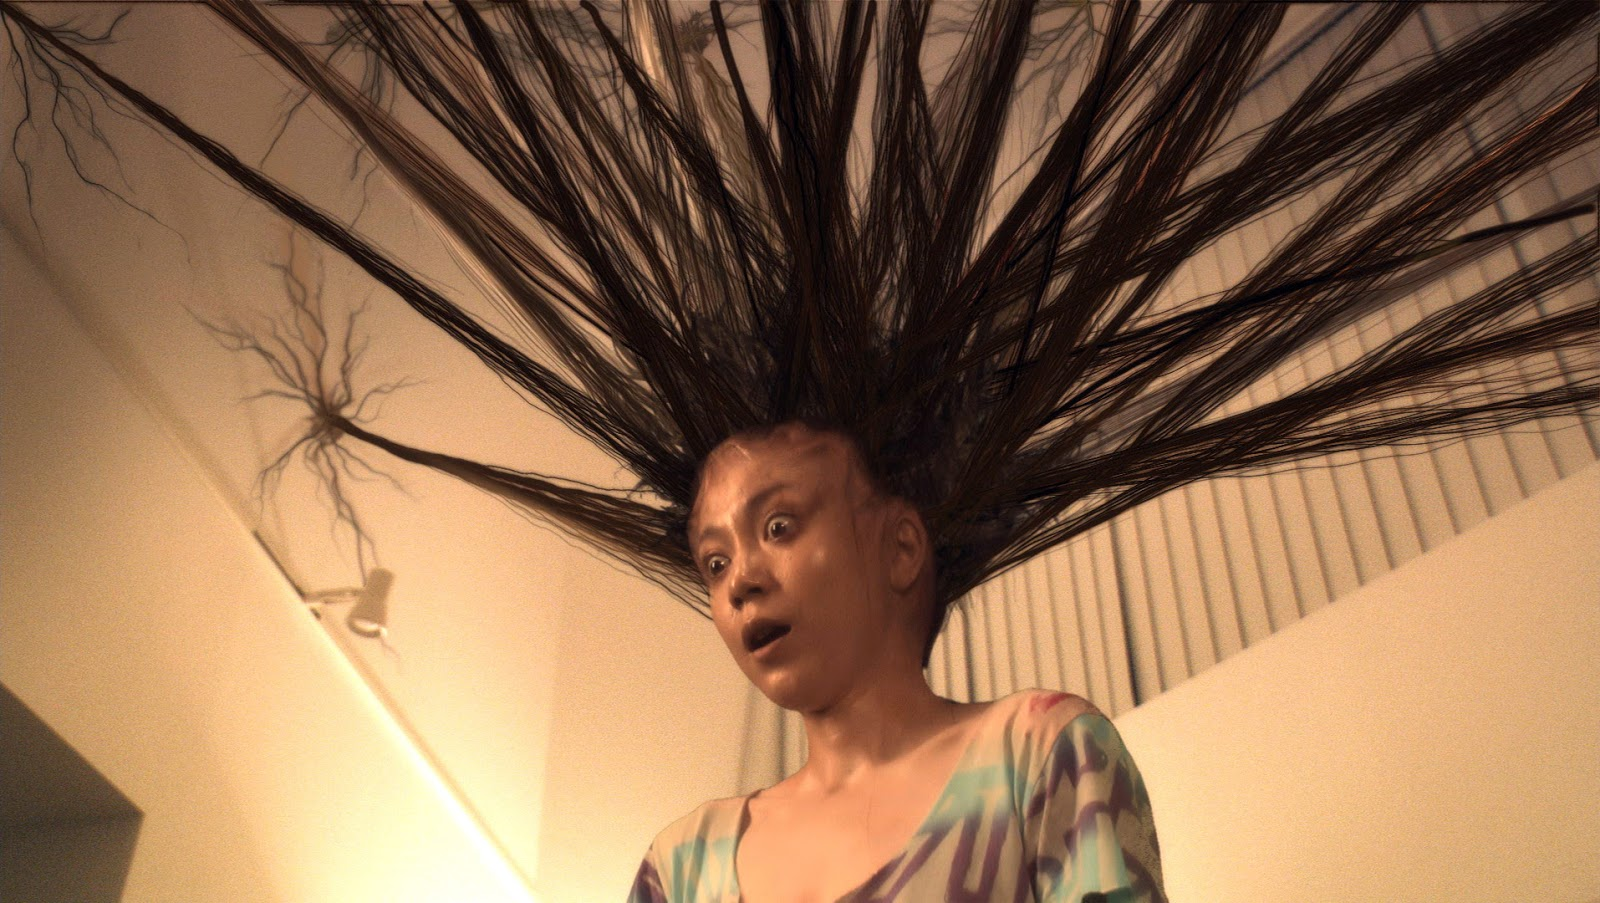 Yuna Natsuo's hair extensions attach themselves to the ceiling in Exte: Hair Extensions (2007)